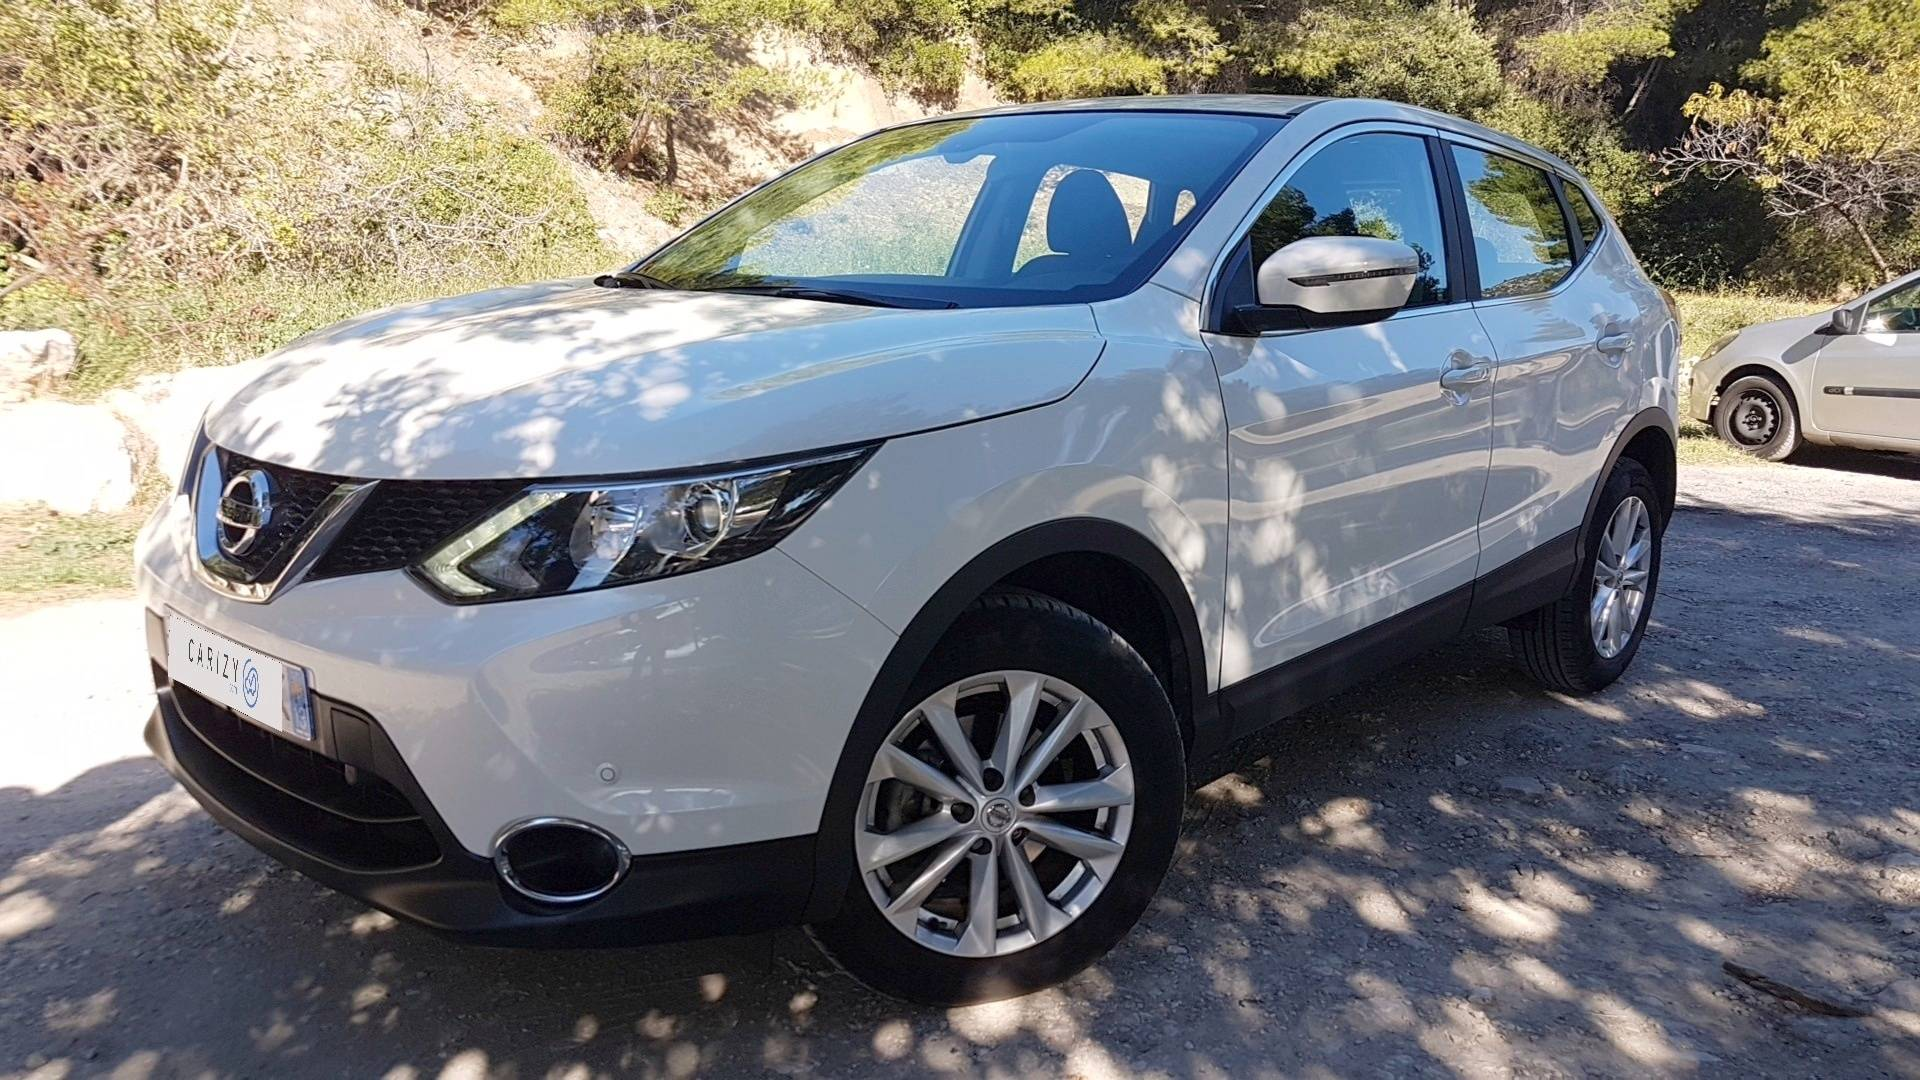 nissan qashqai d 39 occasion 1 5 dci 105 acenta 2wd marseille carizy. Black Bedroom Furniture Sets. Home Design Ideas